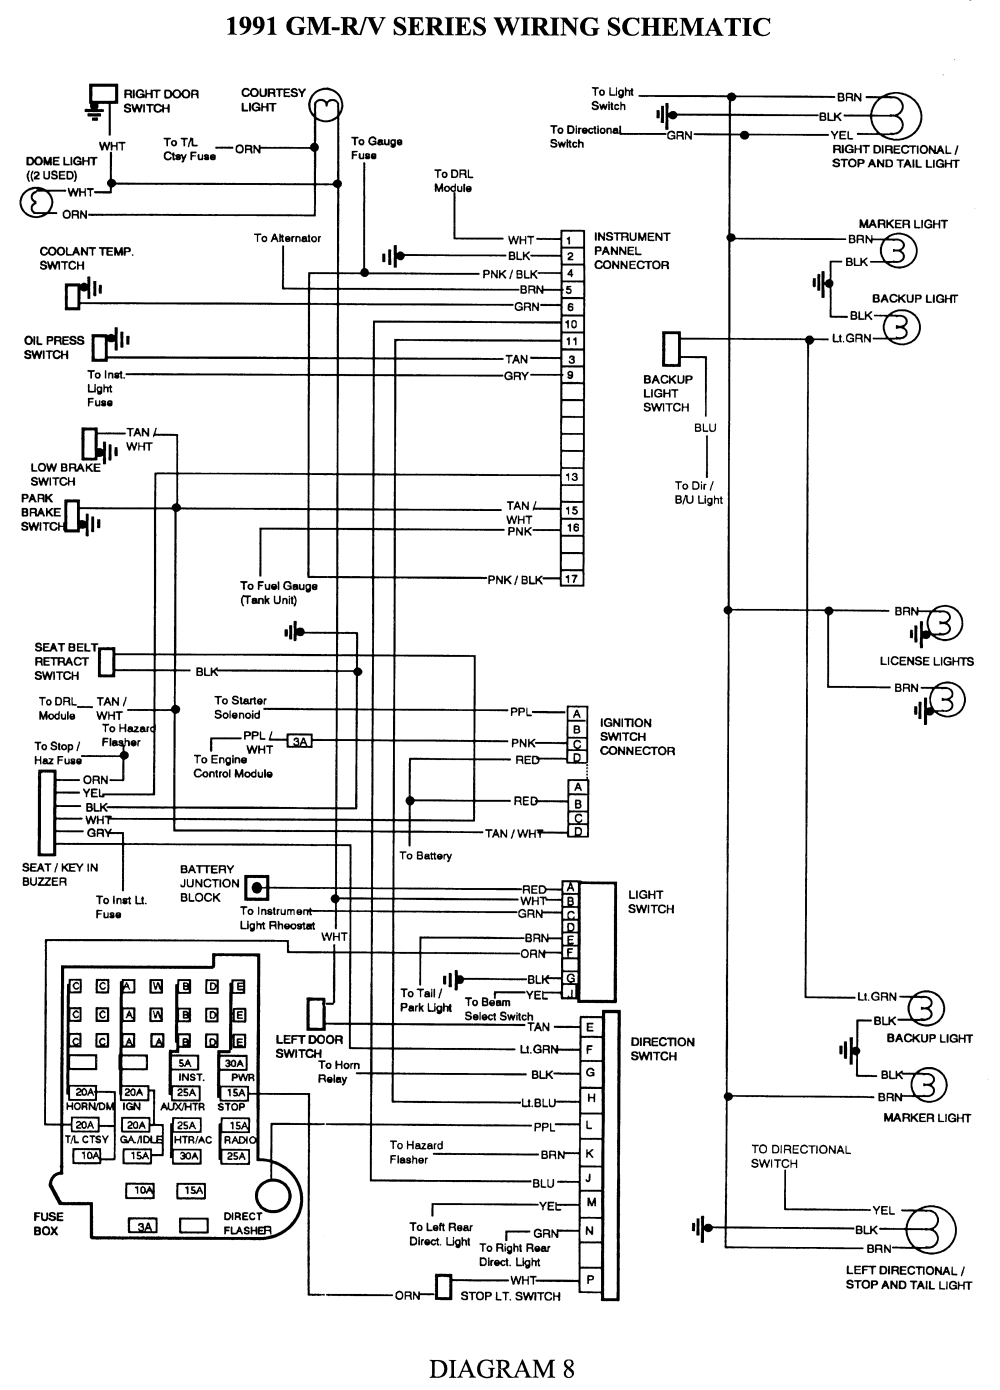 [SCHEMATICS_4FD]  DIAGRAM] 95 Blazer Wiring Diagram FULL Version HD Quality Wiring Diagram -  RJ11WIRING.LEXANESIRAC.FR | 02 Trailblazer Wiring Diagram Free Download |  | rj11wiring.lexanesirac.fr